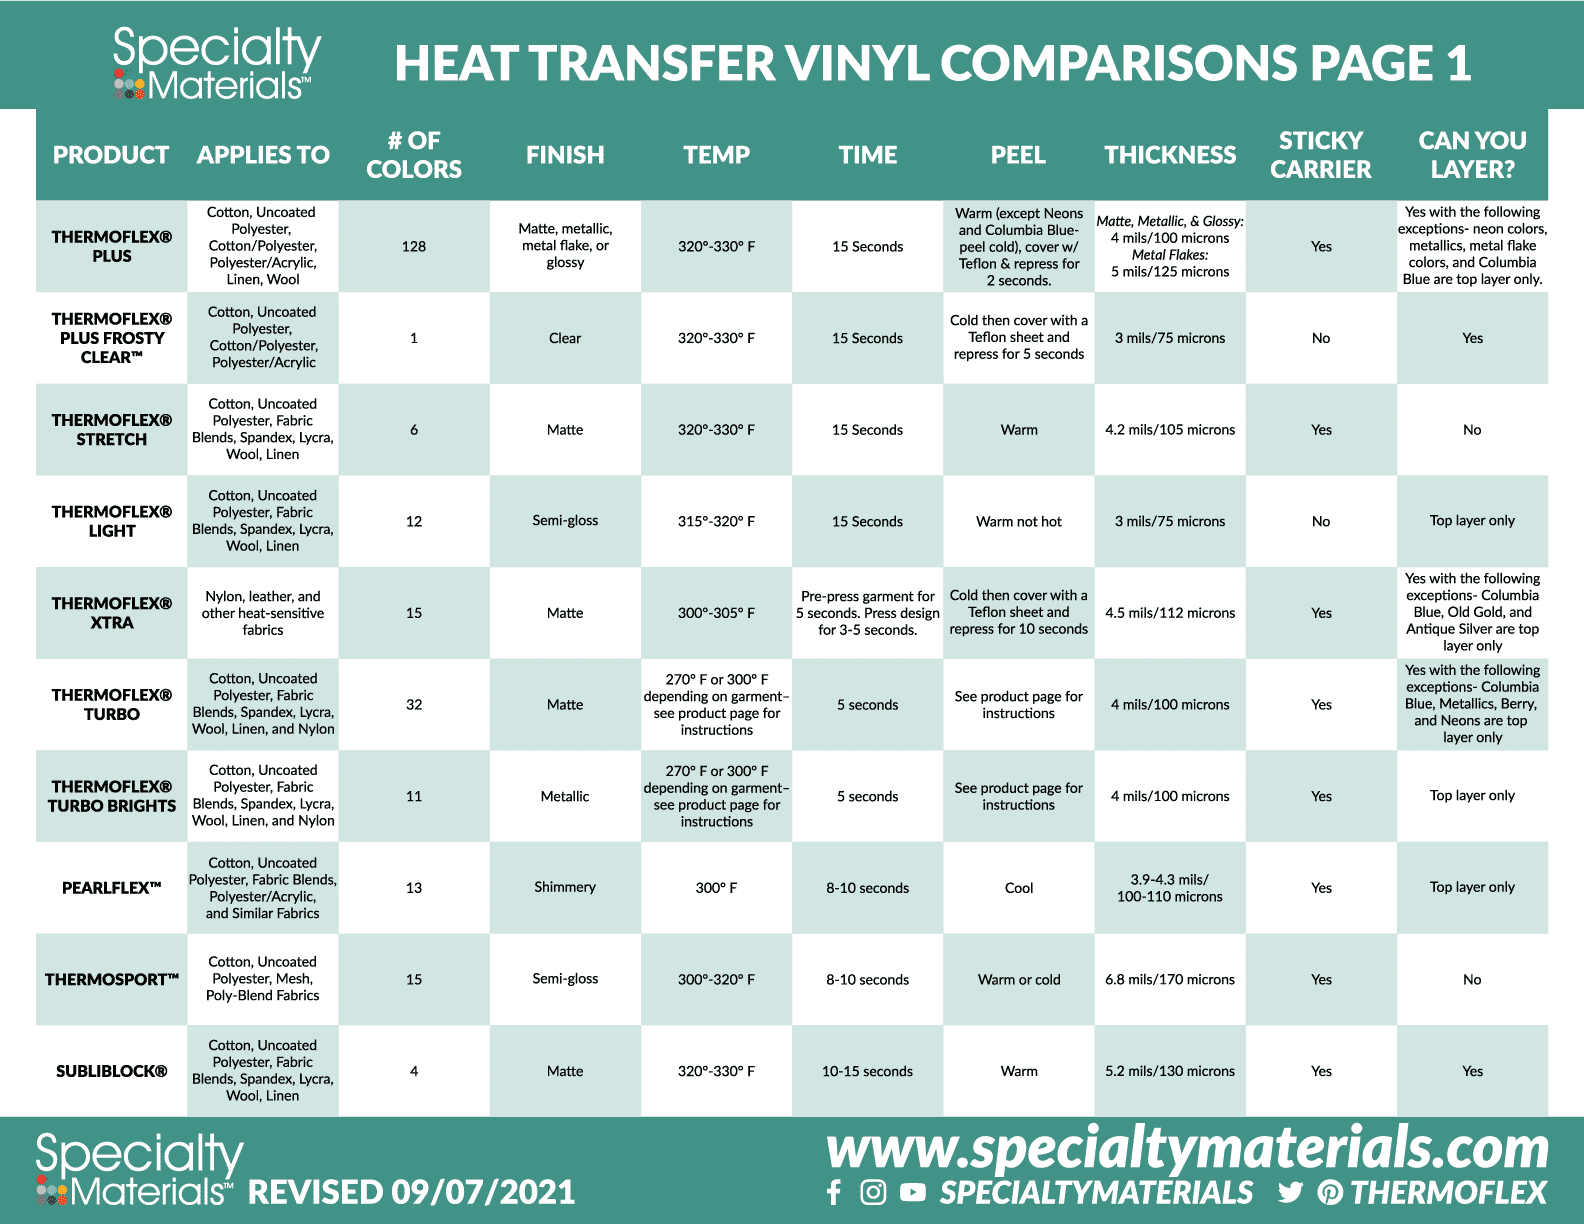 A printable image of the above HTV comparison information, the first page